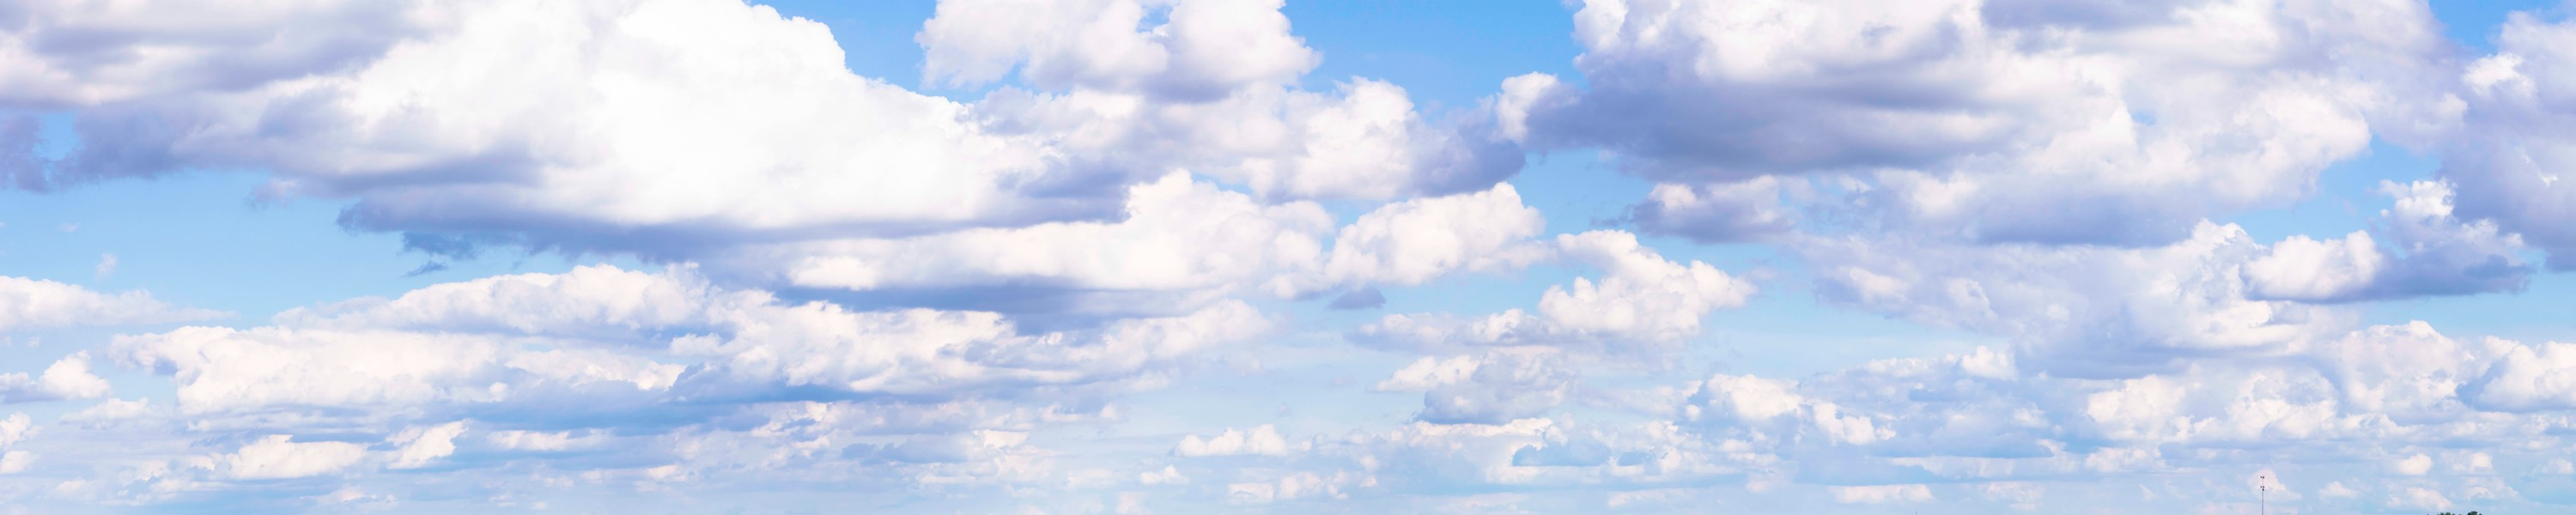 0a5a6404clouds 24x120 befurb